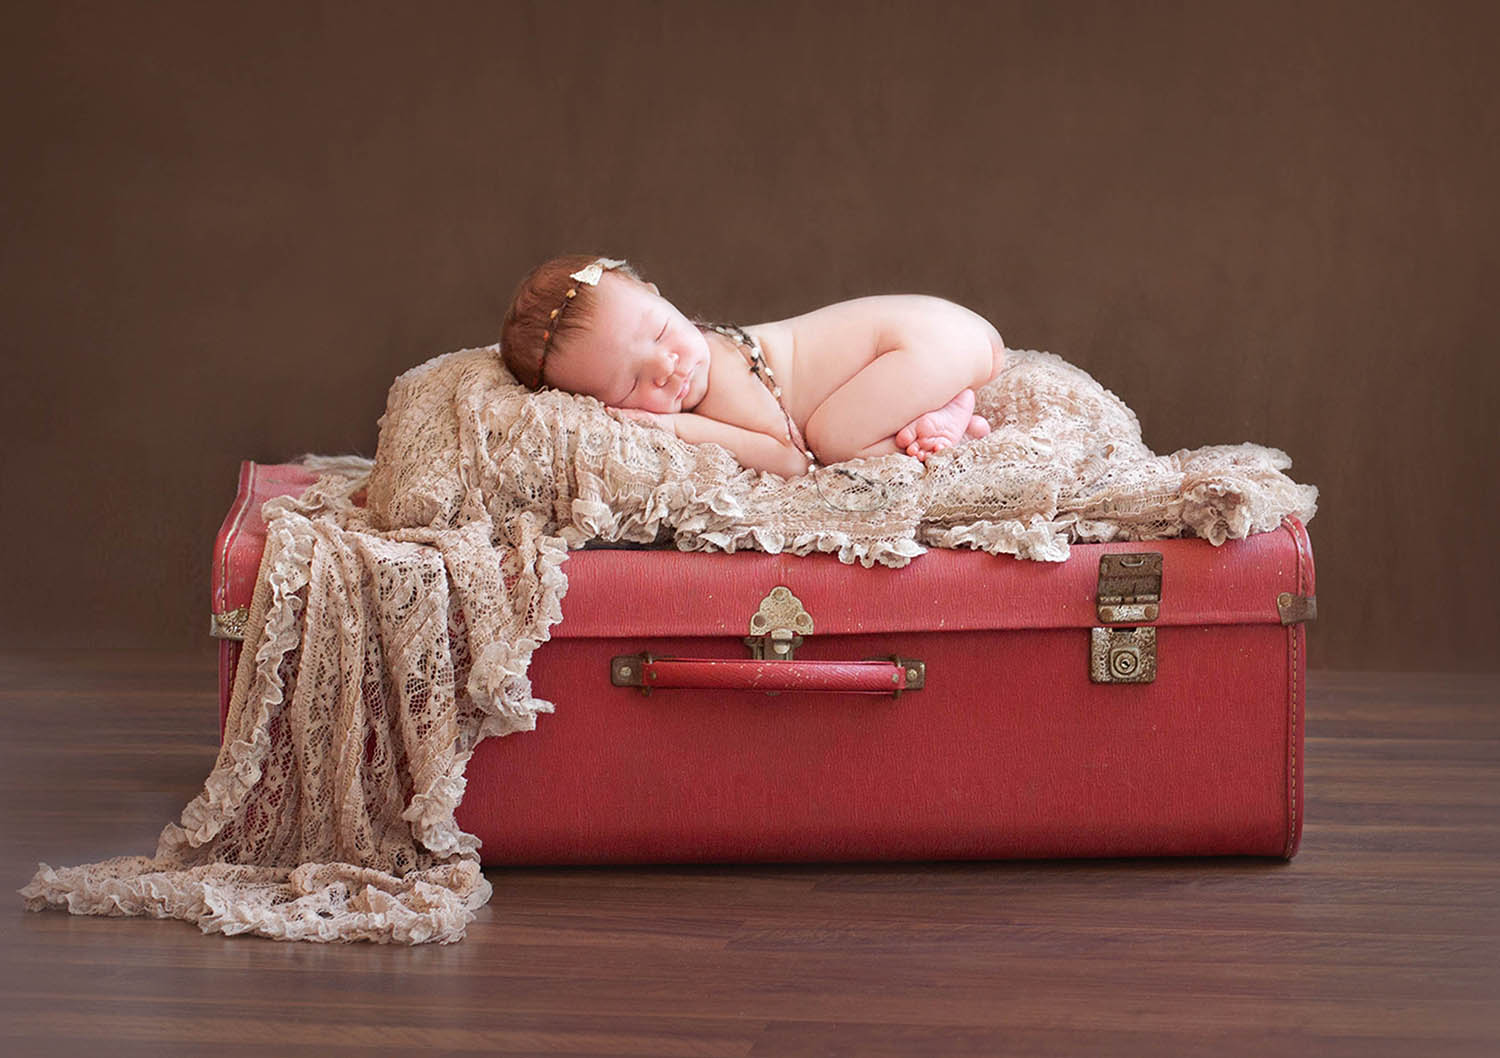 Newborn girl sleeping on red suitcase with brown lace wrap and bow tieback